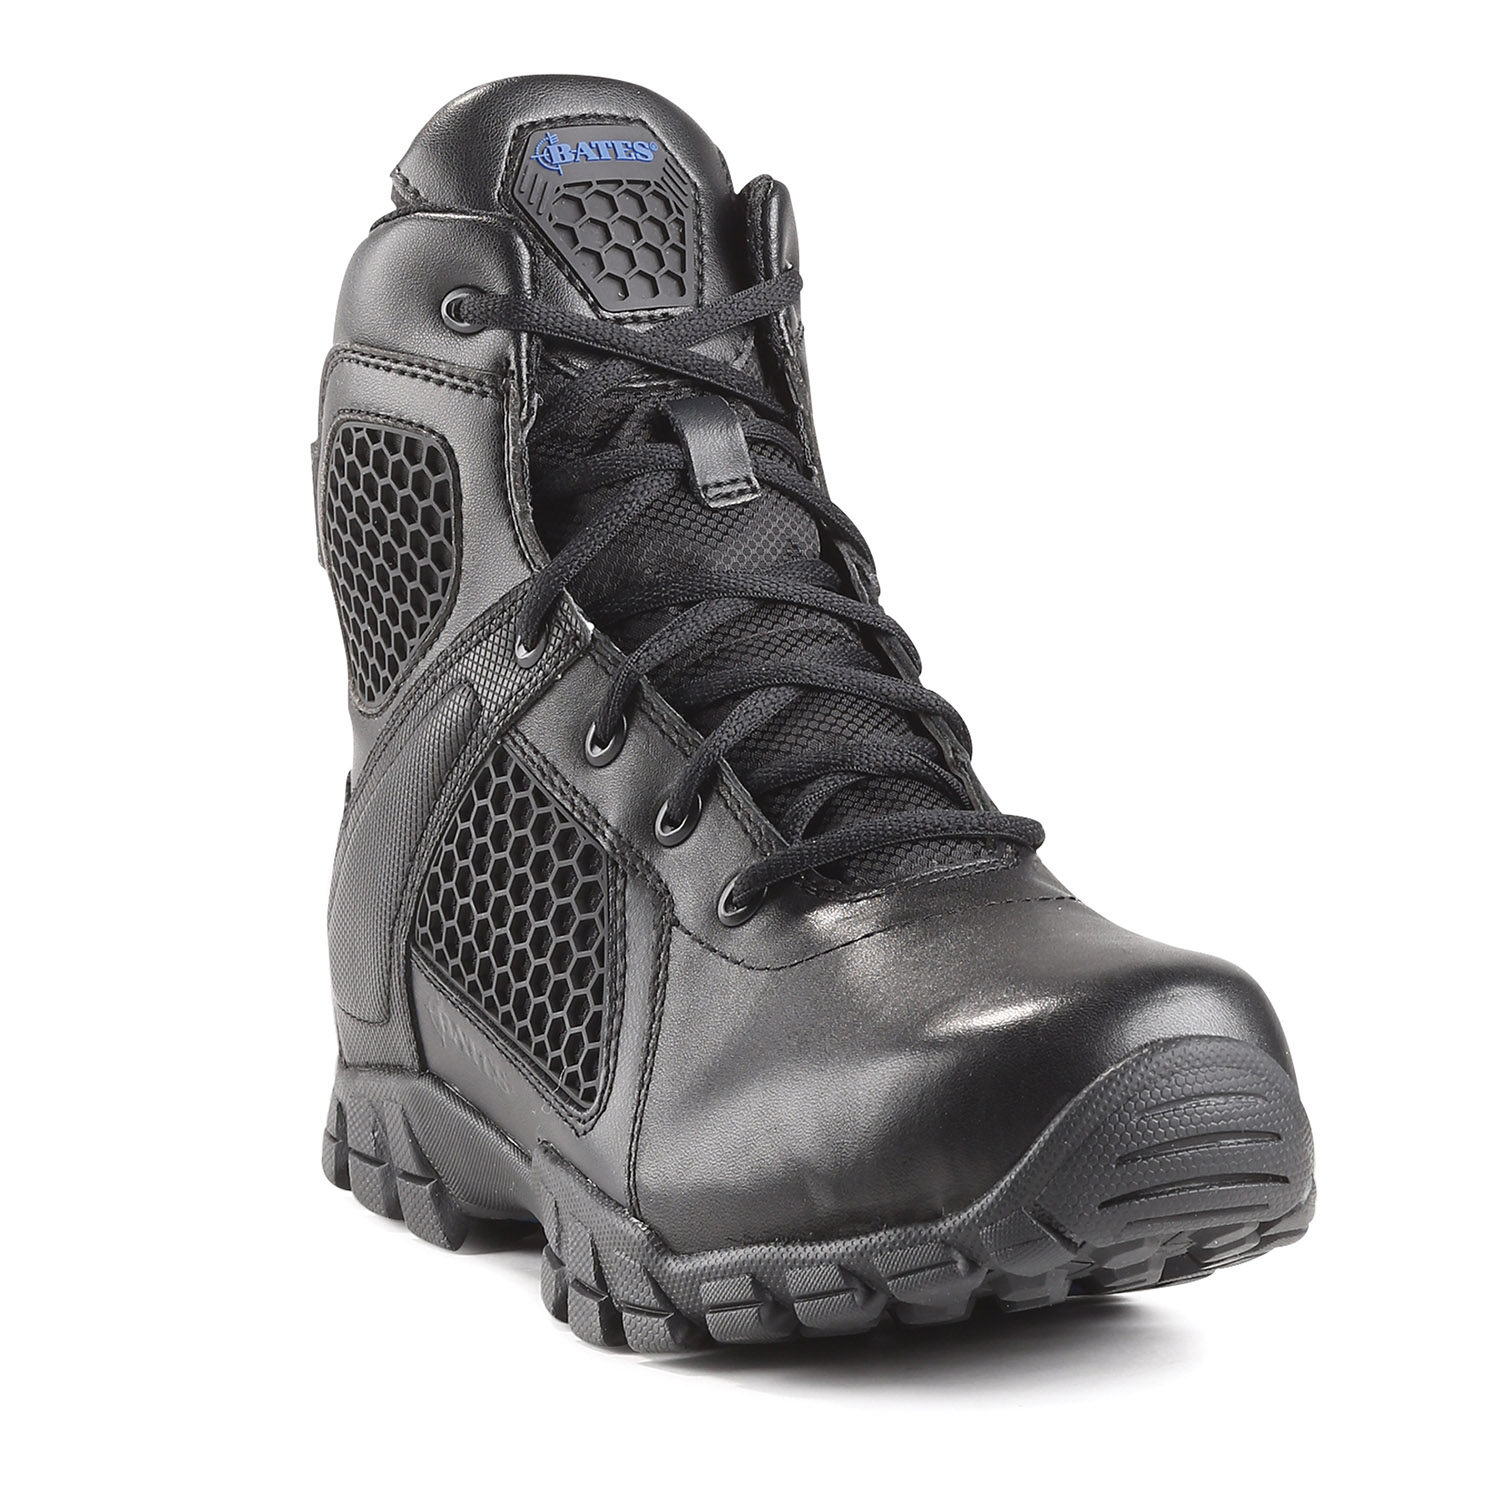 "Bates 6"" Shock Zipper Waterproof Boot"